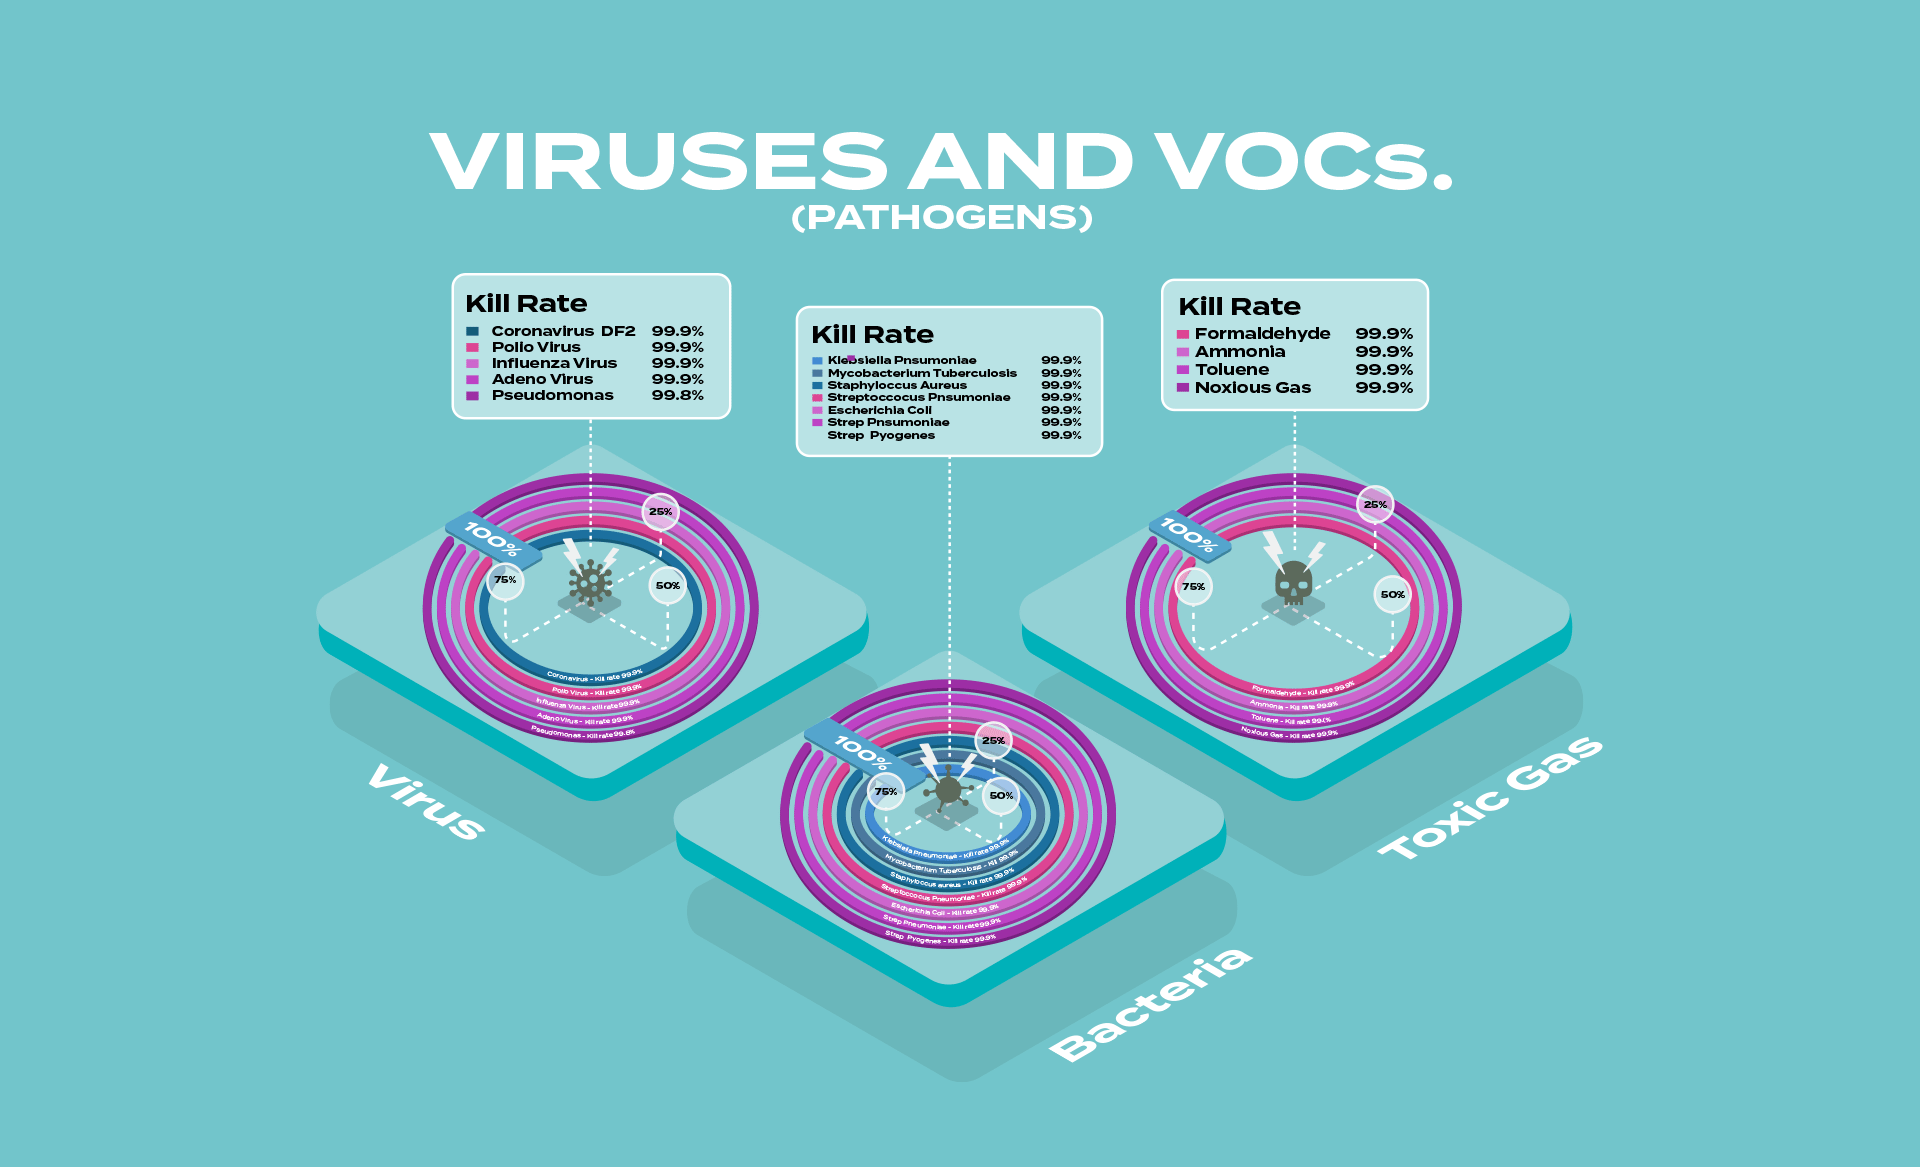 an infographic showing the virus killers stats in regards to clean air